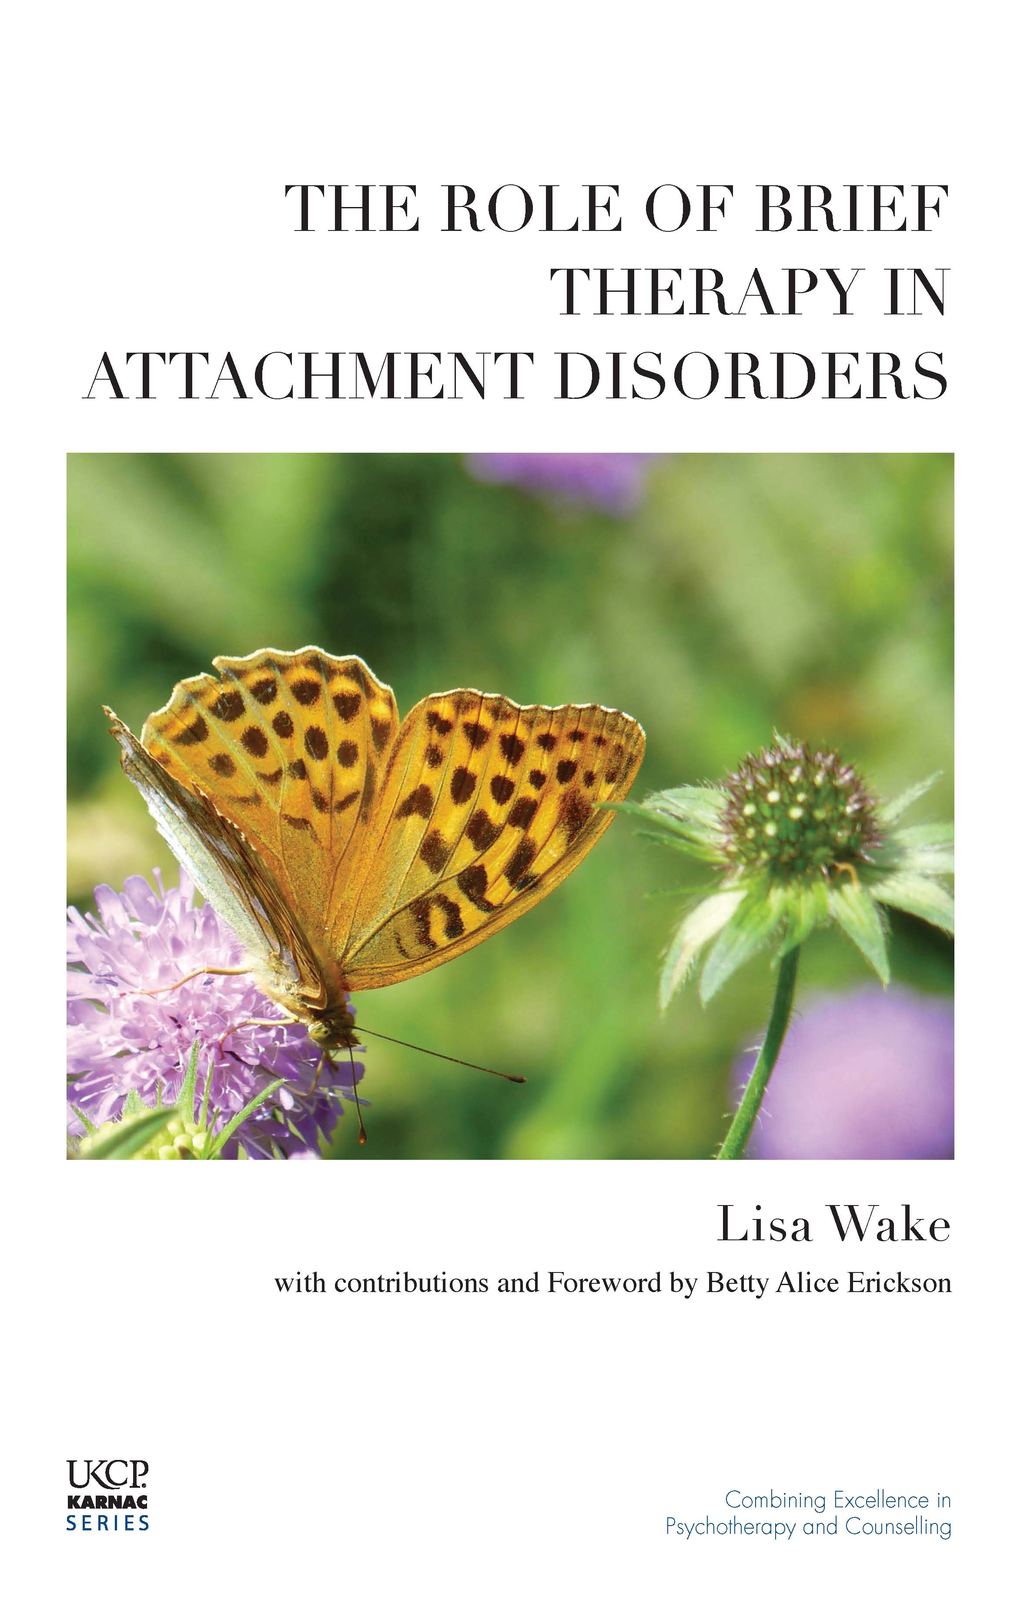 The Role of Brief Therapy in Attachment Disorders